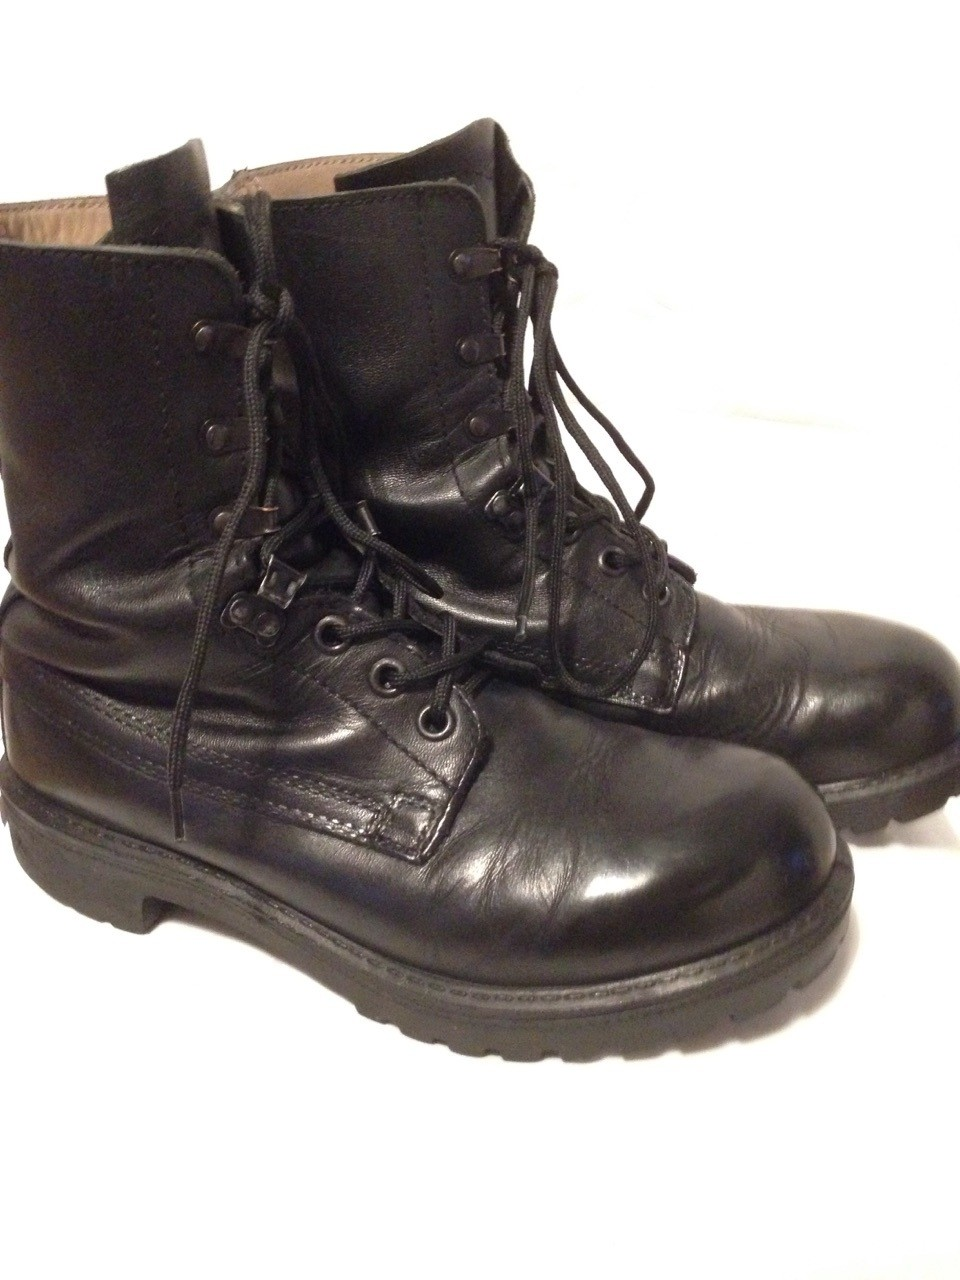 British Army Assault Boots Size 7M